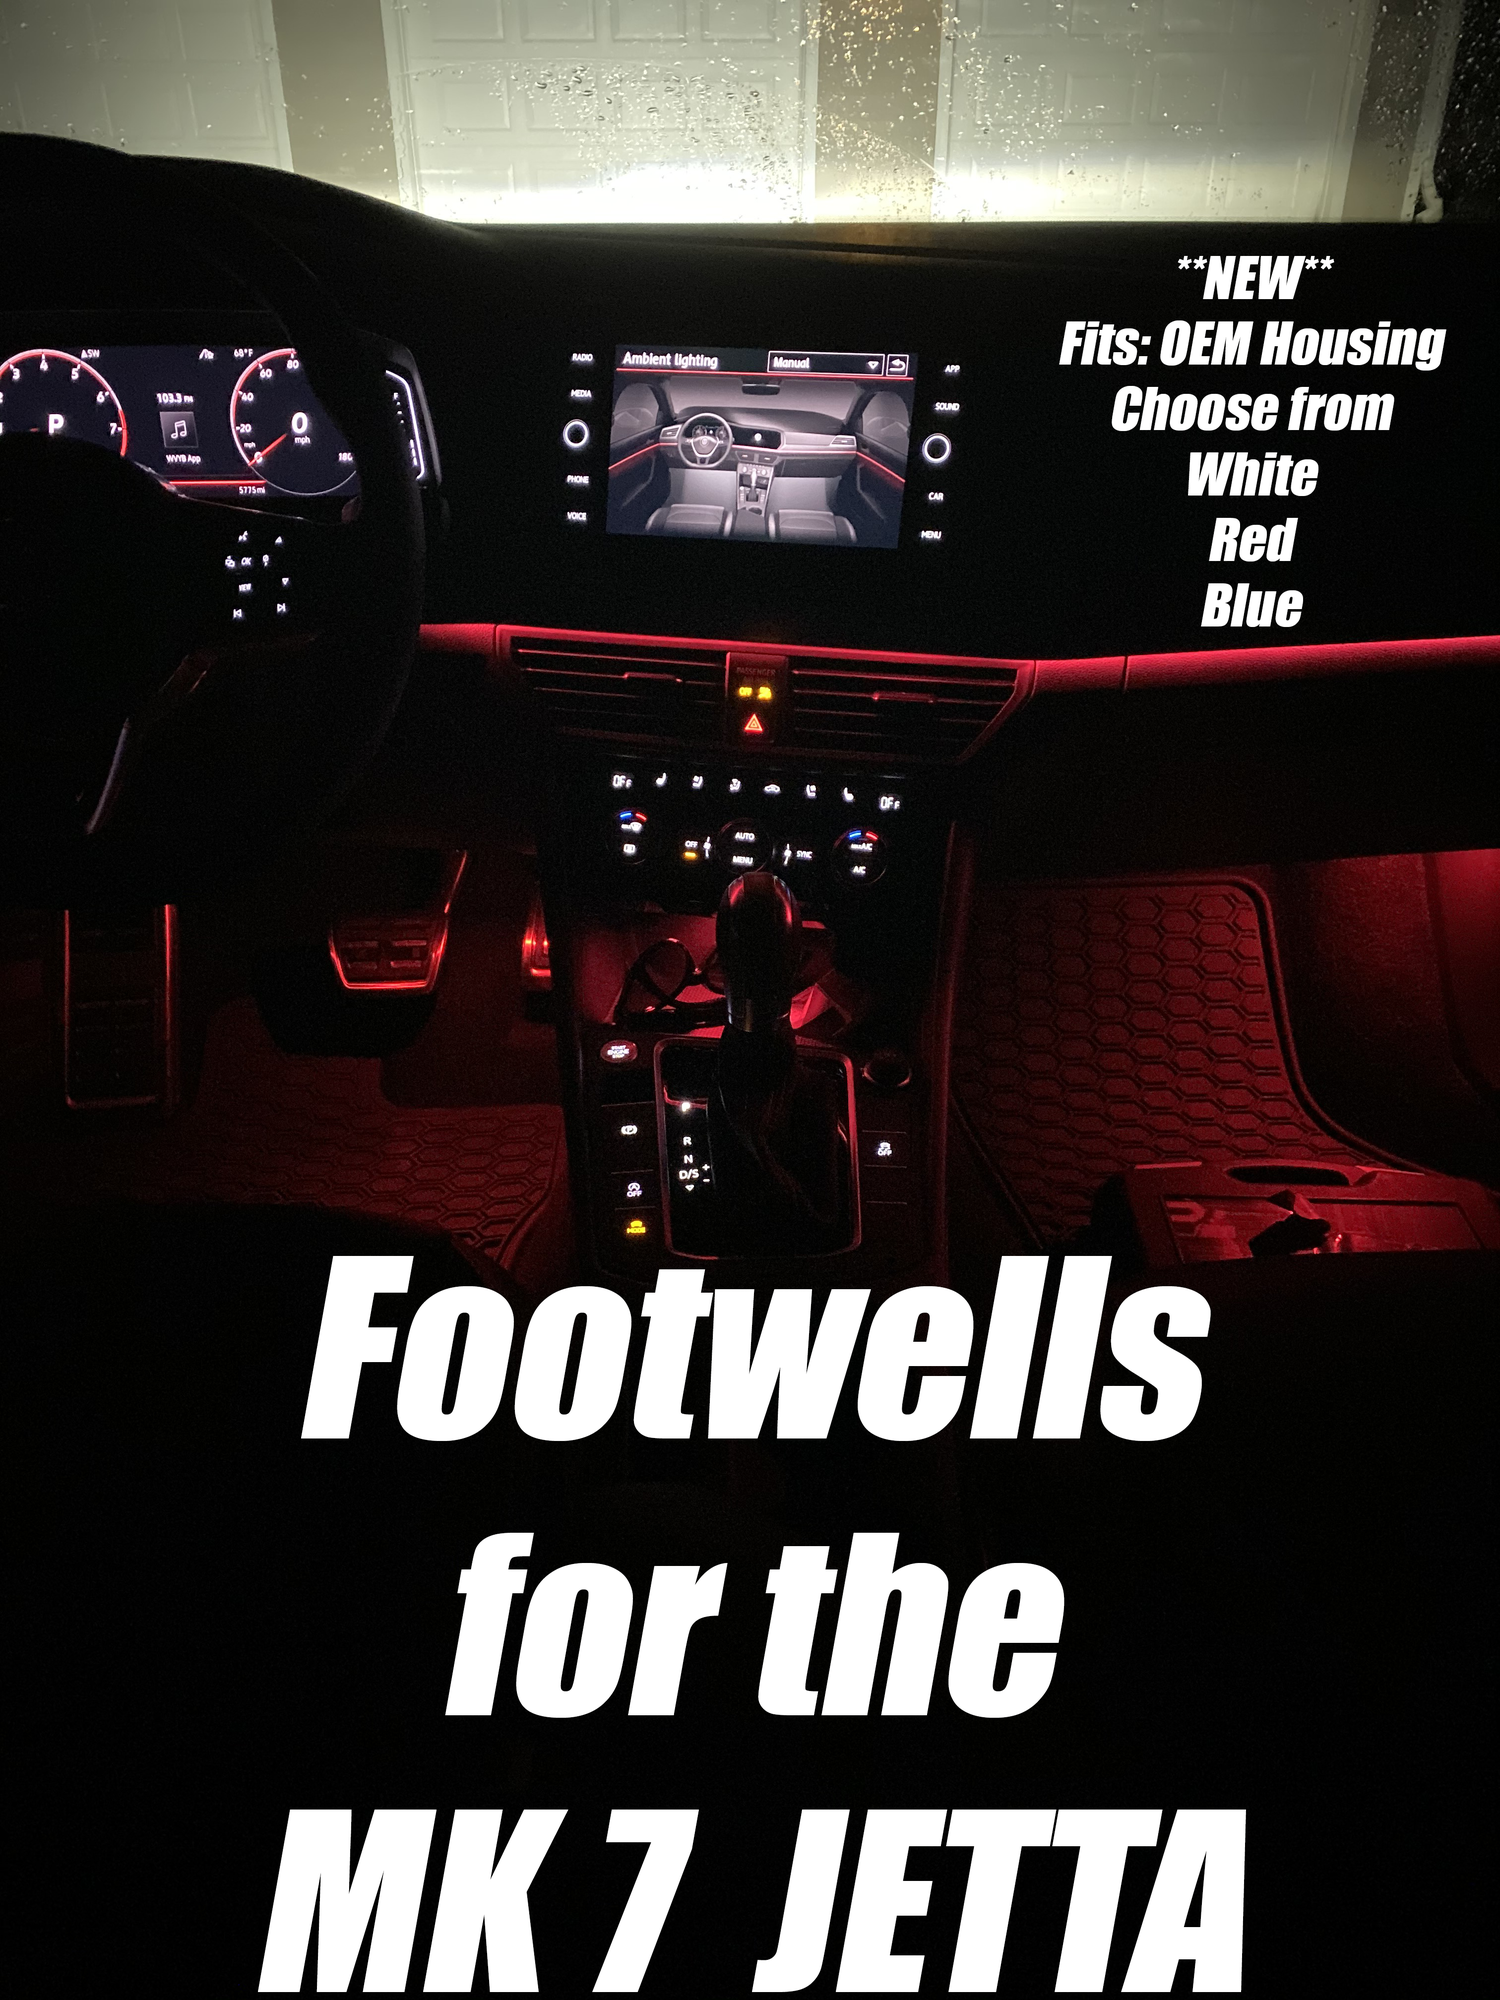 Image of LED footwells For the MK7 VII Jetta - Choose from white, red, or blue